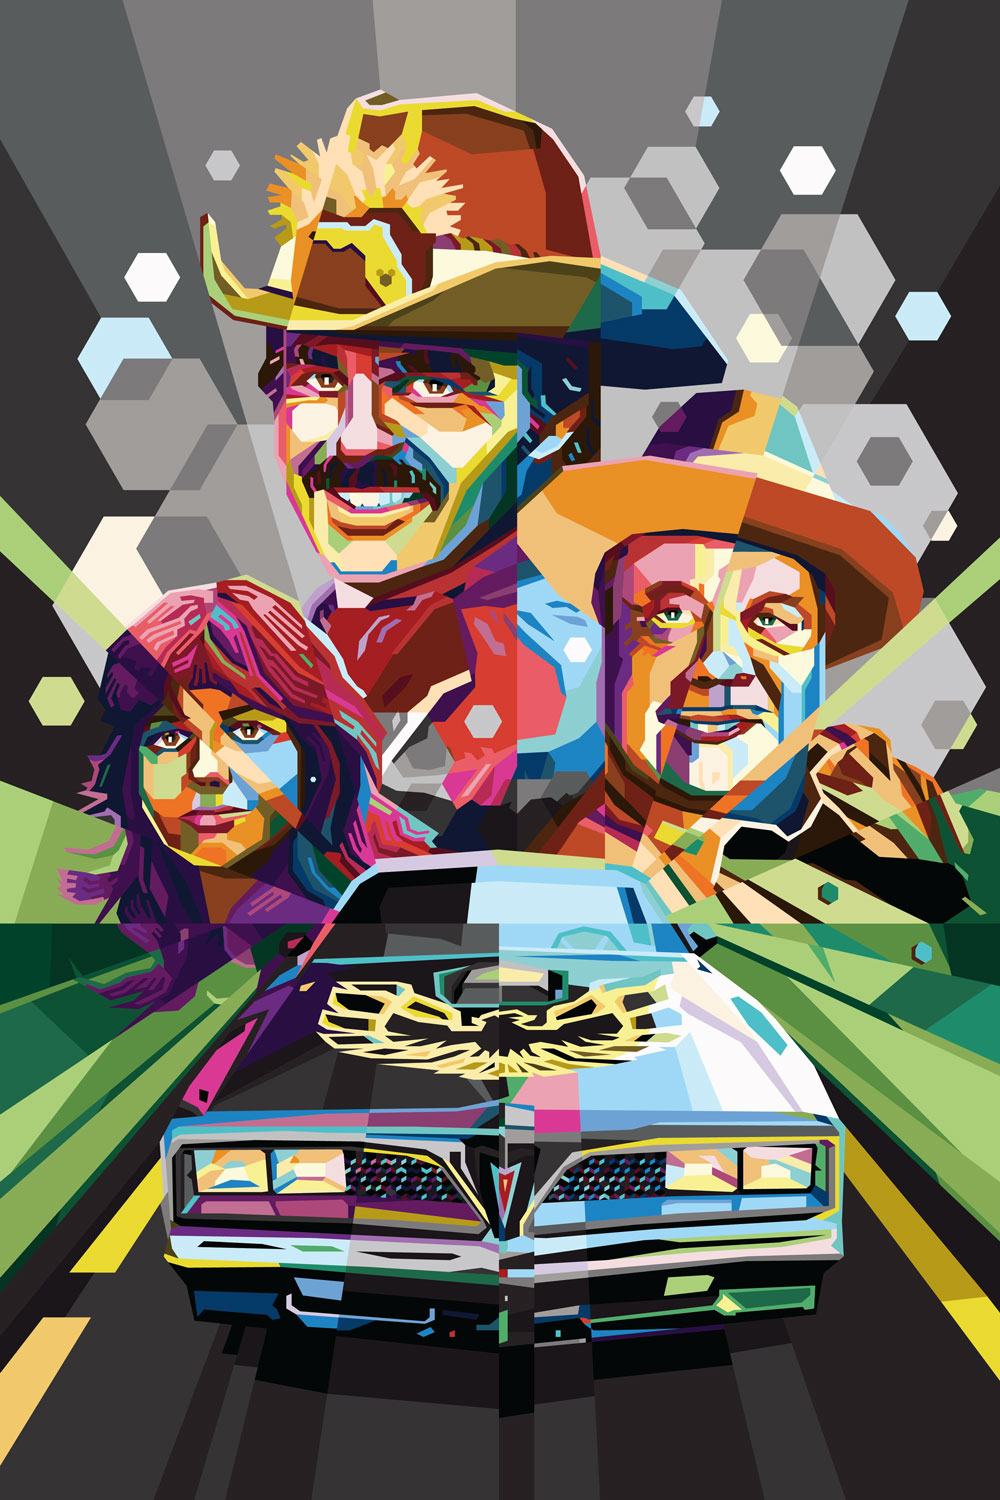 Smokey and the Bandit - One of the greatest Southern documentaries ever made, Smokey and the Bandit is the story of man's desire to deliver cheap beer really fast. Truly one of the greatest chase movies ever made — watched it recently and it still holds up. Starring the late Burt Reynolds, Sally Field, Jackie Gleason (as the tenacious Sheriff Buford T. Justice), and one of the most recognizable cars ever to grace the silver screen; the Pontiac Firebird Trans Am.